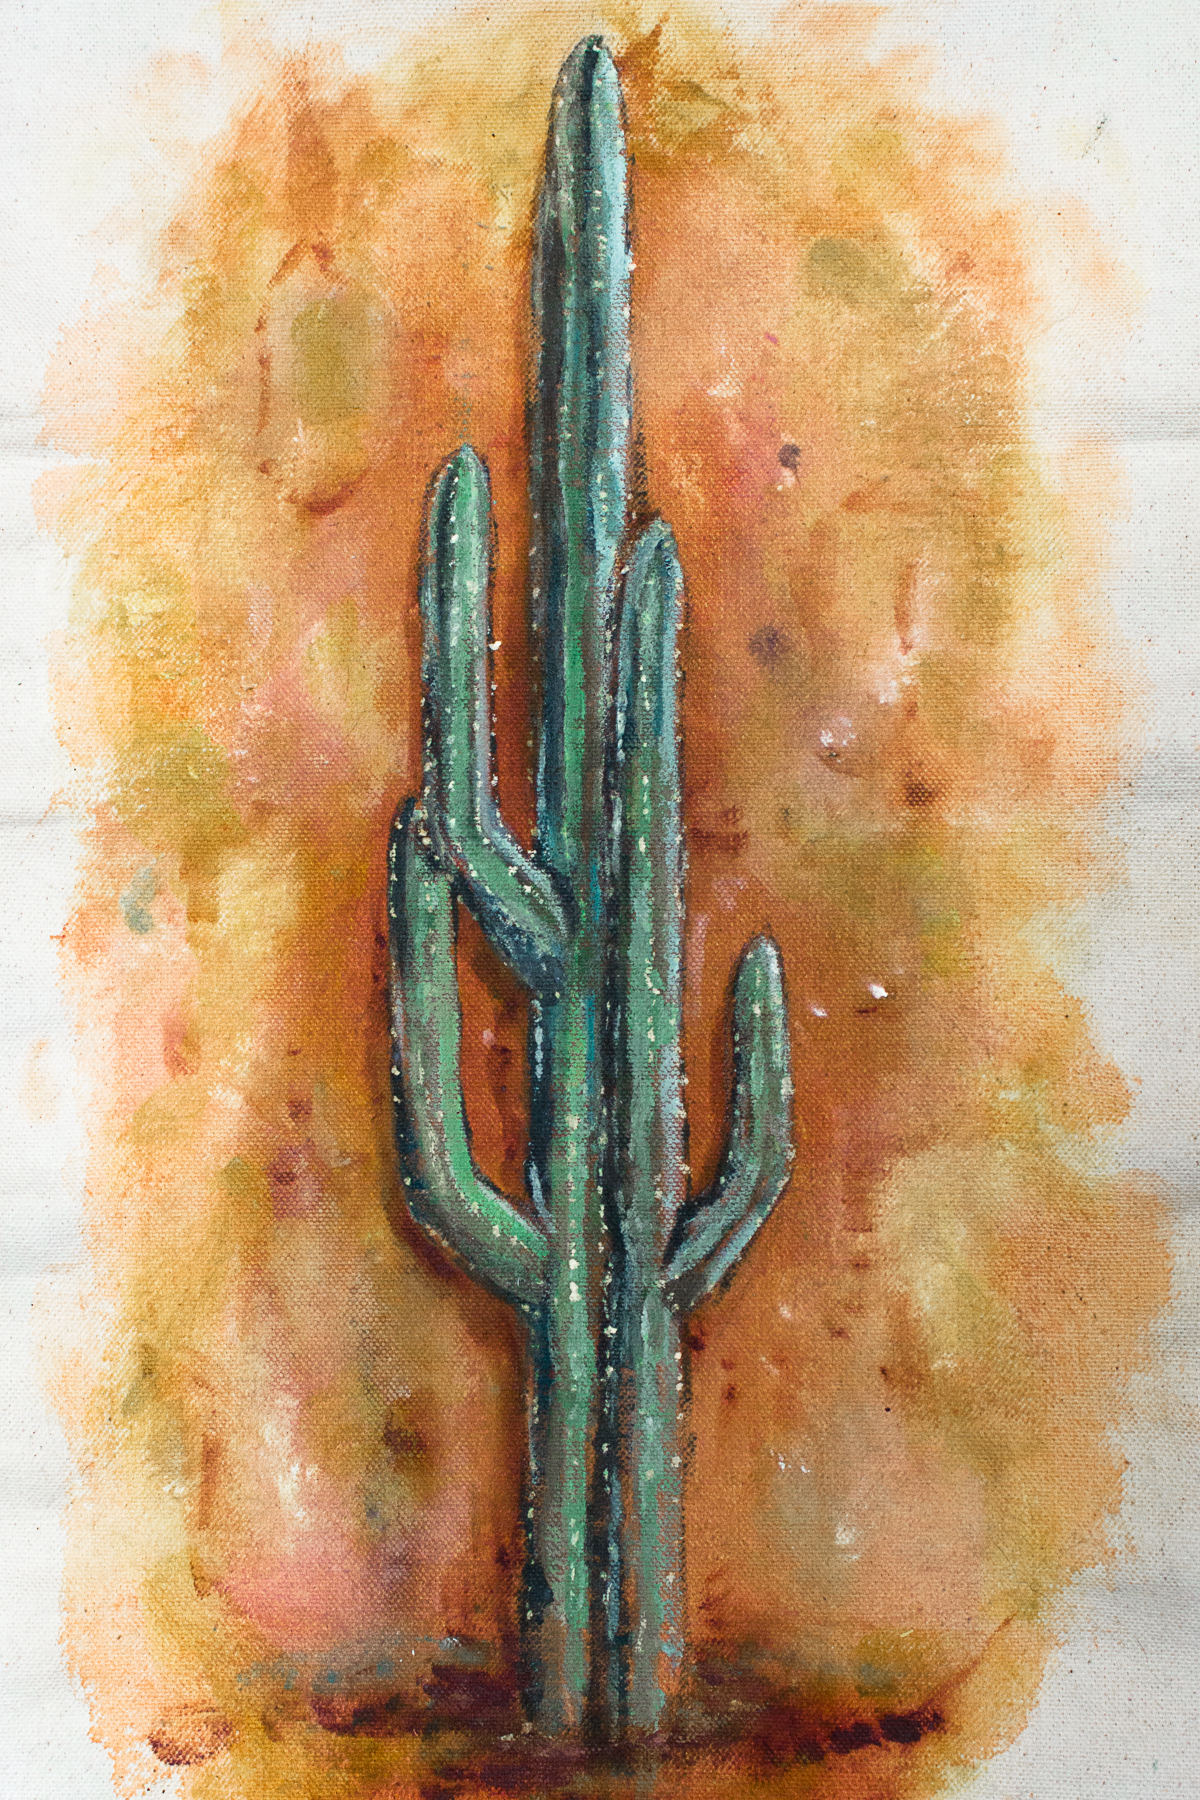 """CACTUS"" 2018 - OIL ON RAW UNSTRETCHED CANVAS"